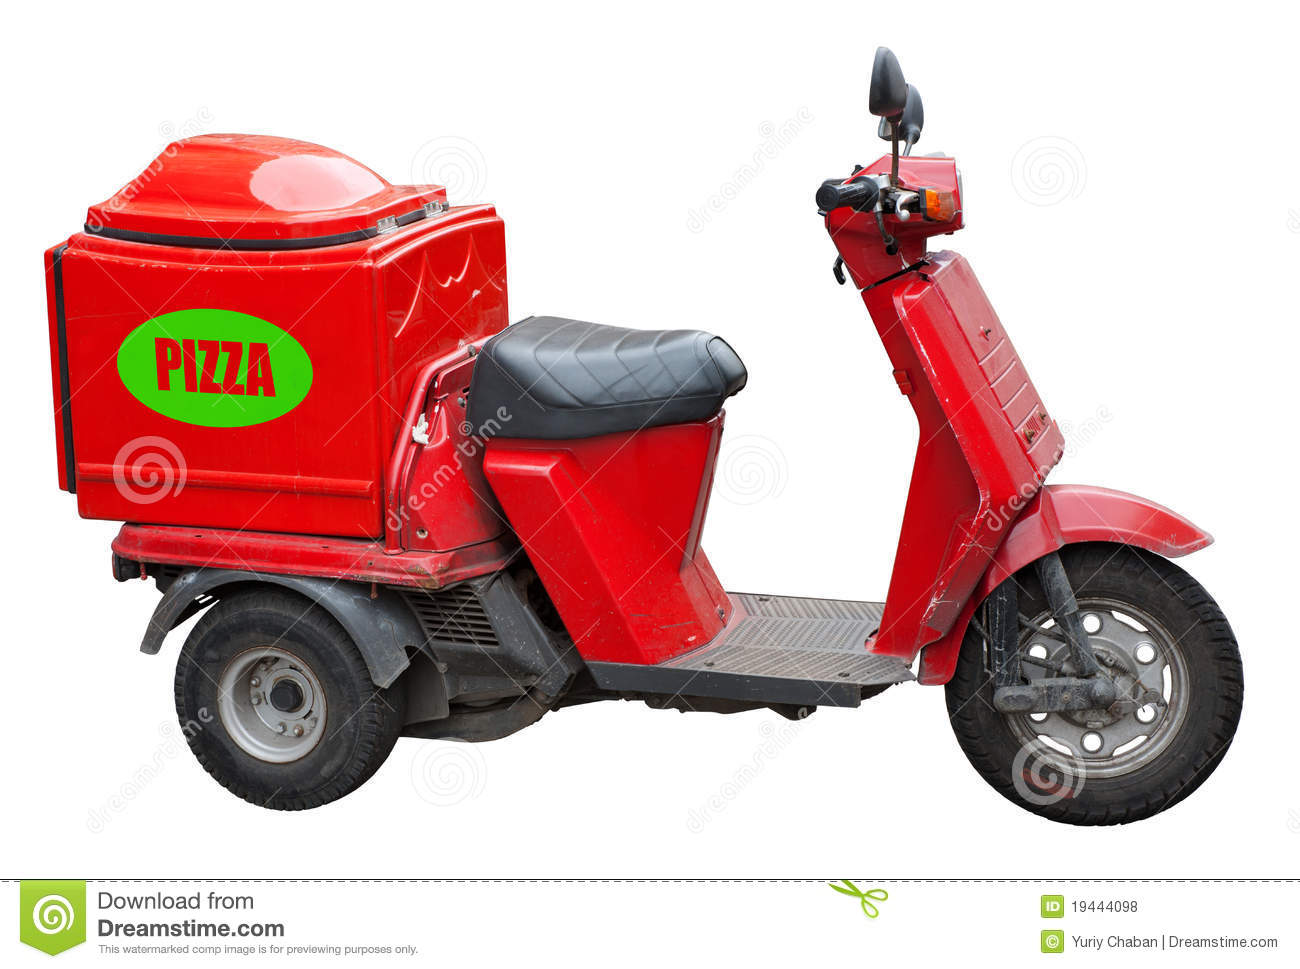 how to carry a pizza on a motorcycle